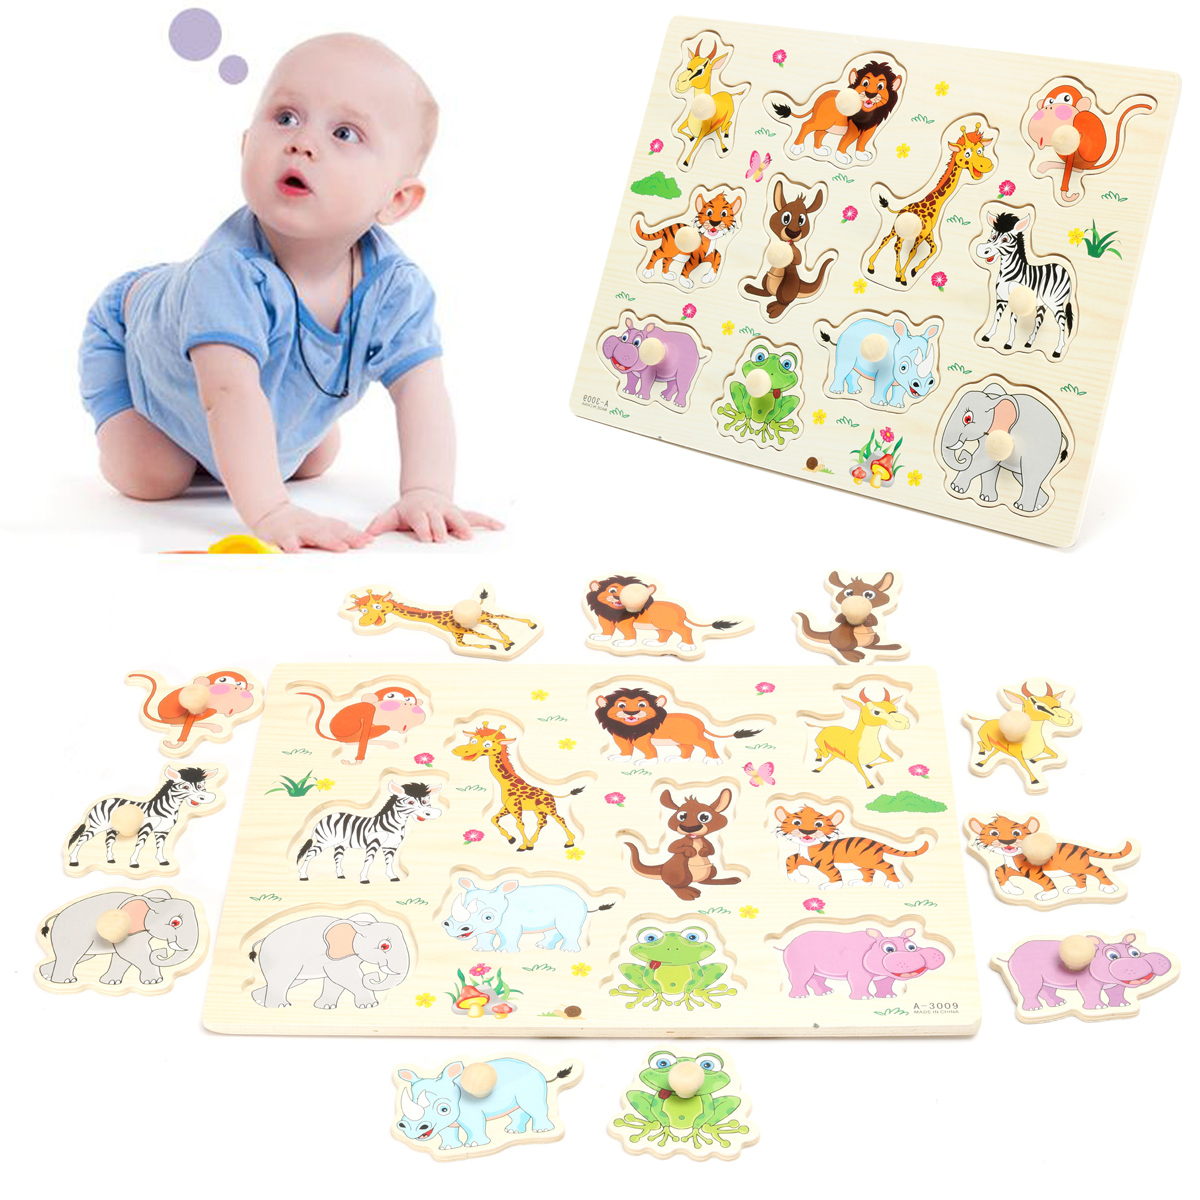 Wooden Zoo Animal / Alphabet ABC Peg Jigsaw Puzzle Toy Toddlers Early Learning Preschool Educational Plate